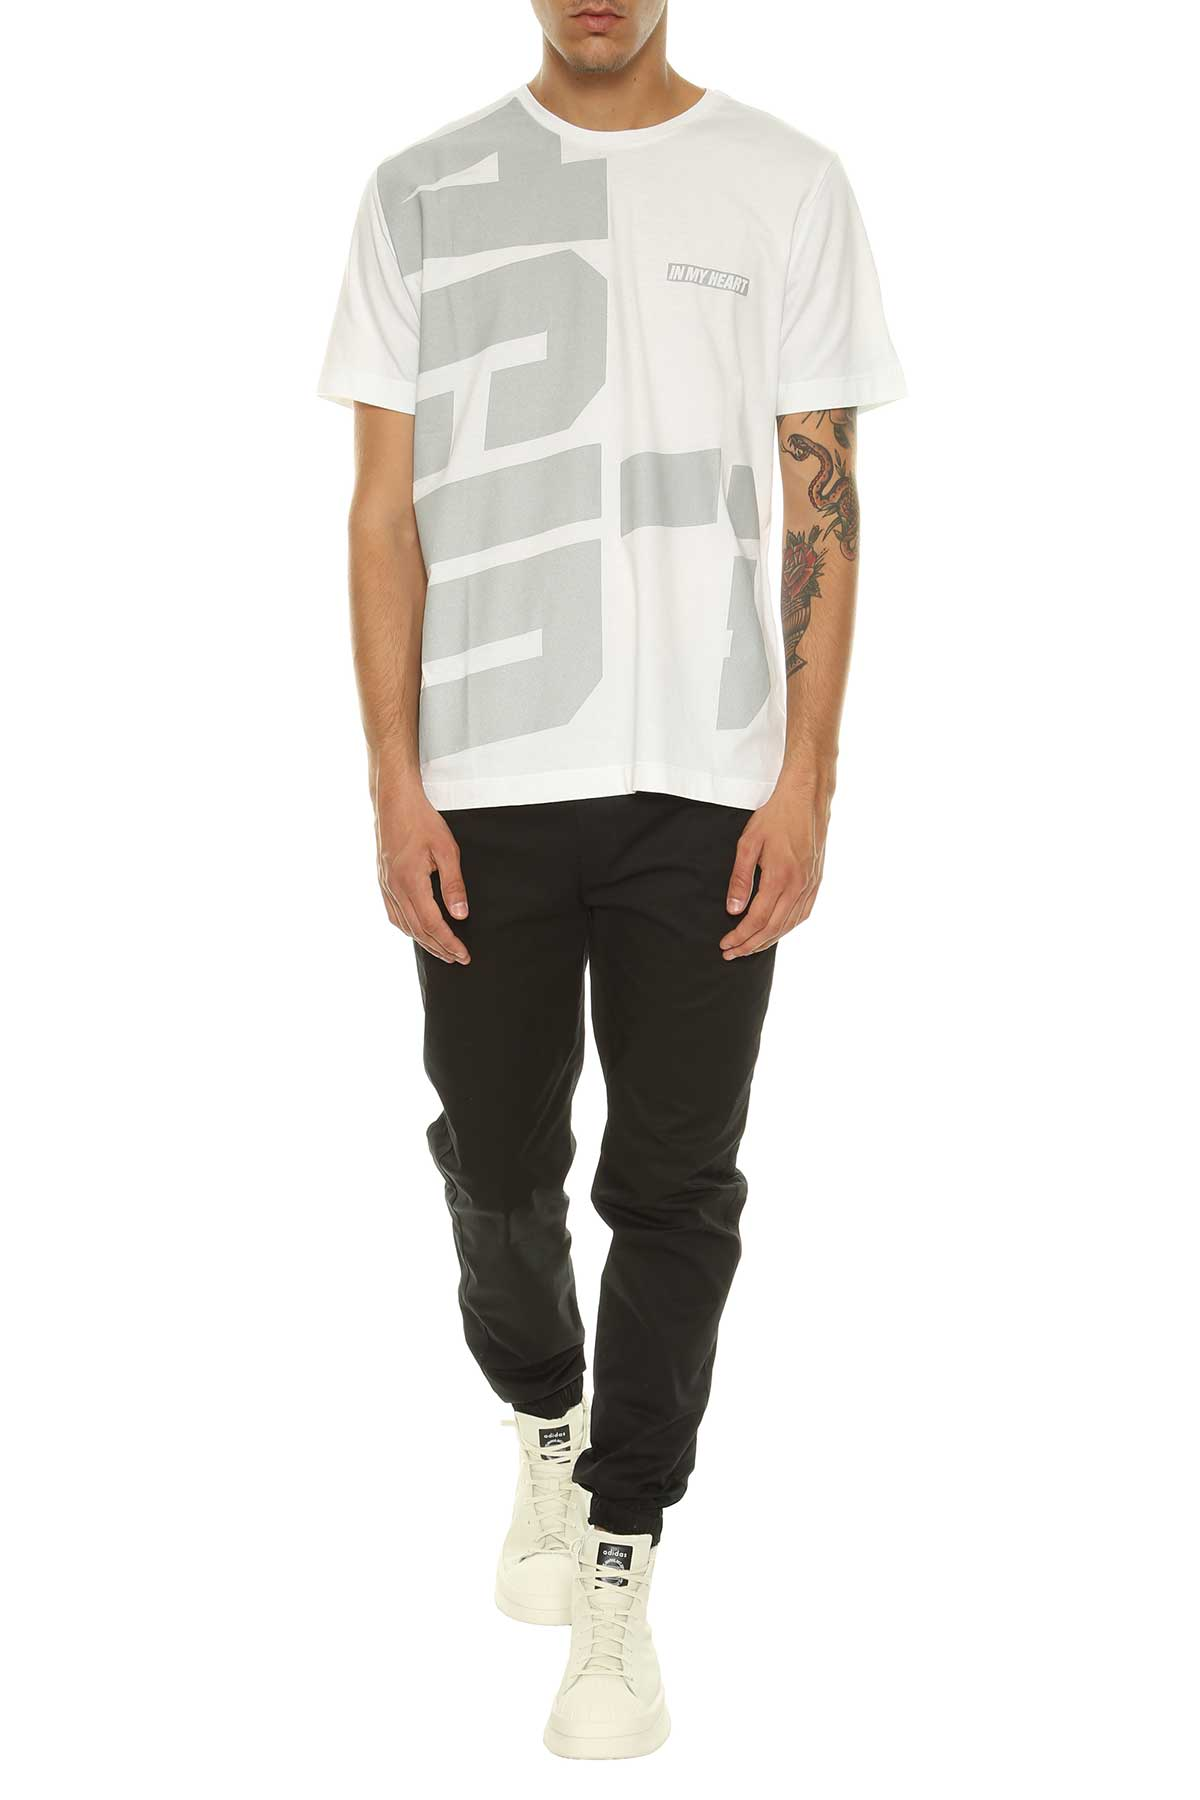 Tim Coppens Printed T-shirt